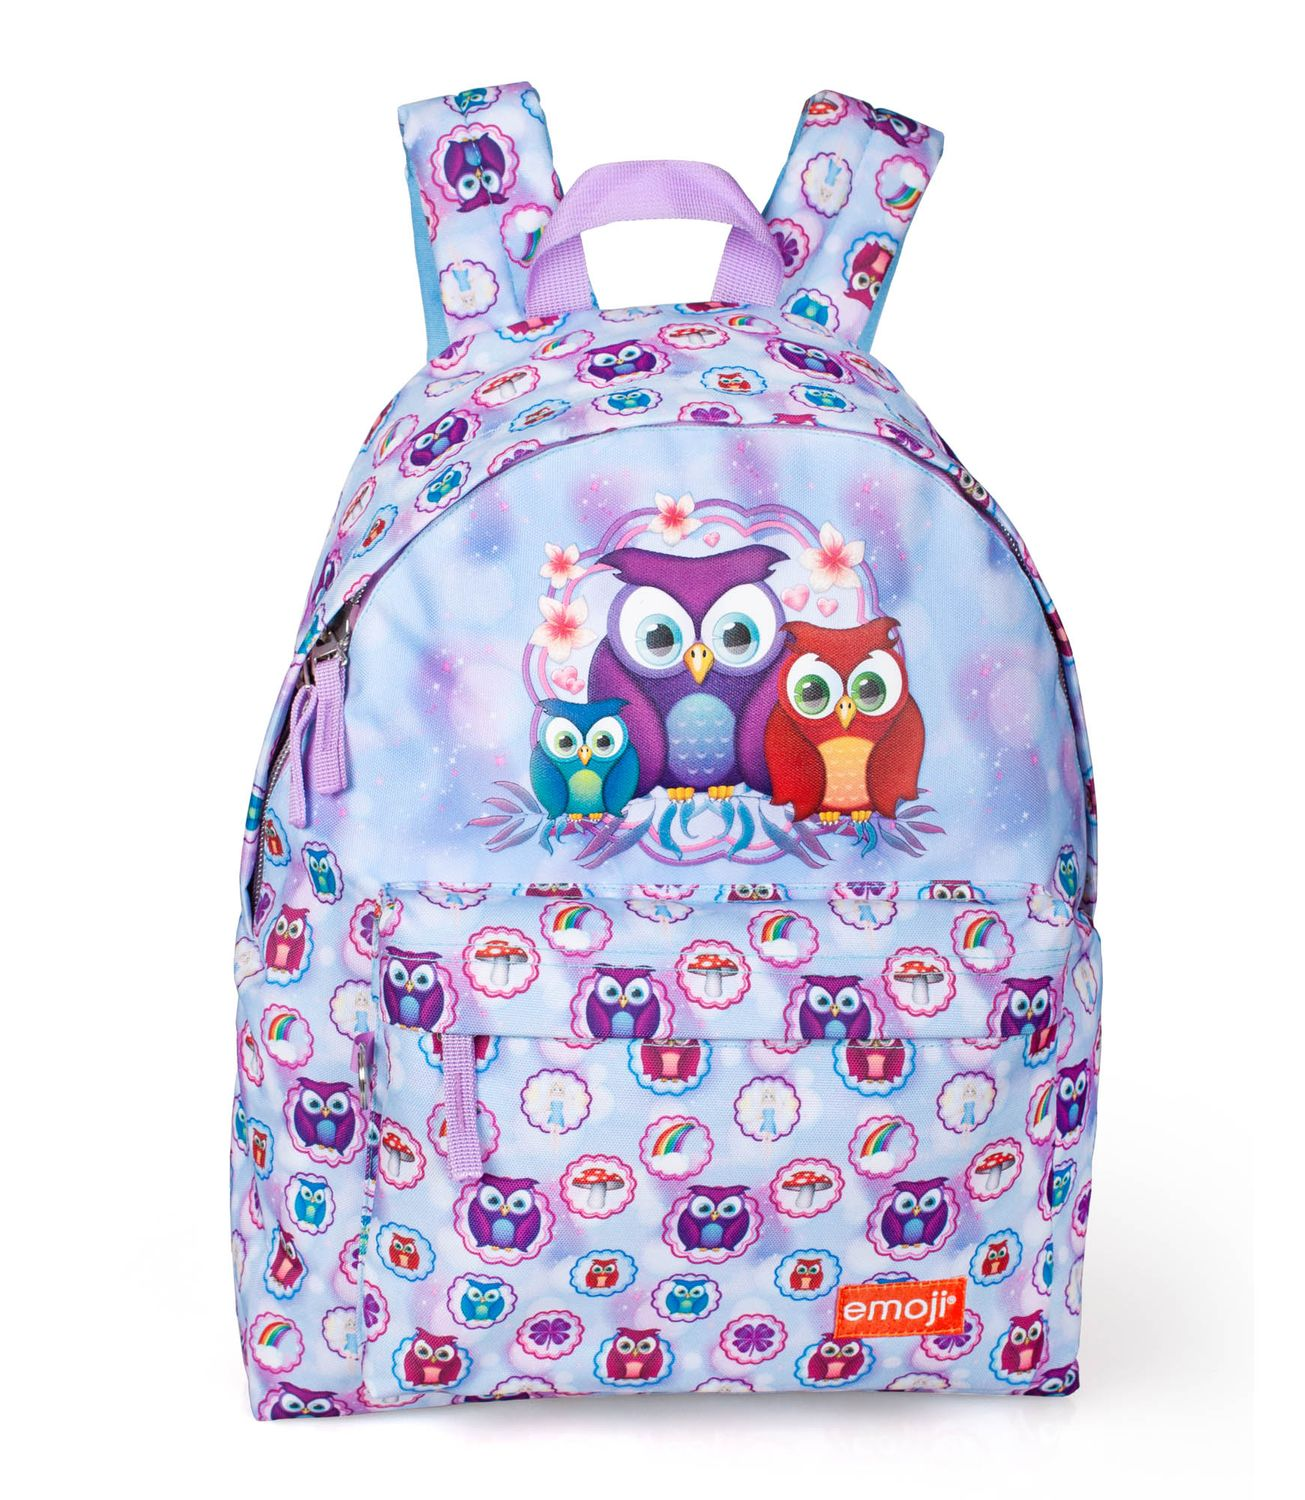 Backpack Rucksack EMOJI Official PINK OWLS – image 1